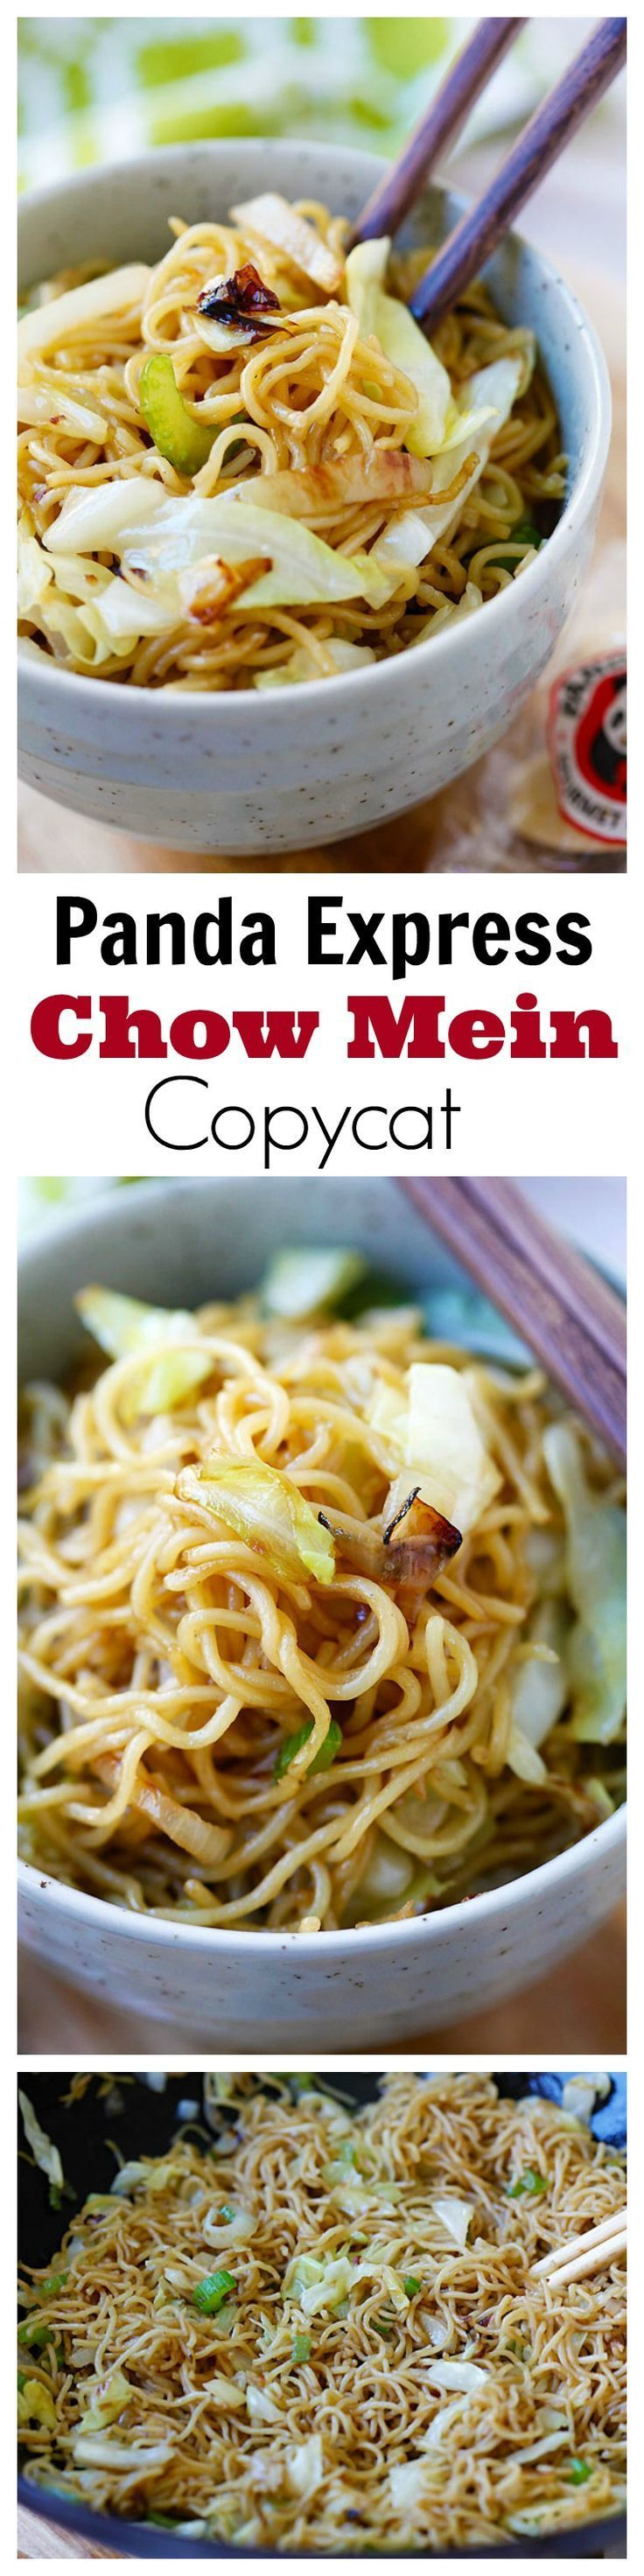 Panda Express Chow Mein!! BEST copycat recipe EVER, tastes EXACTLY like Panda Express. So good, so easy, takes 15 mins!!! | rasamalaysia.com | #noodles